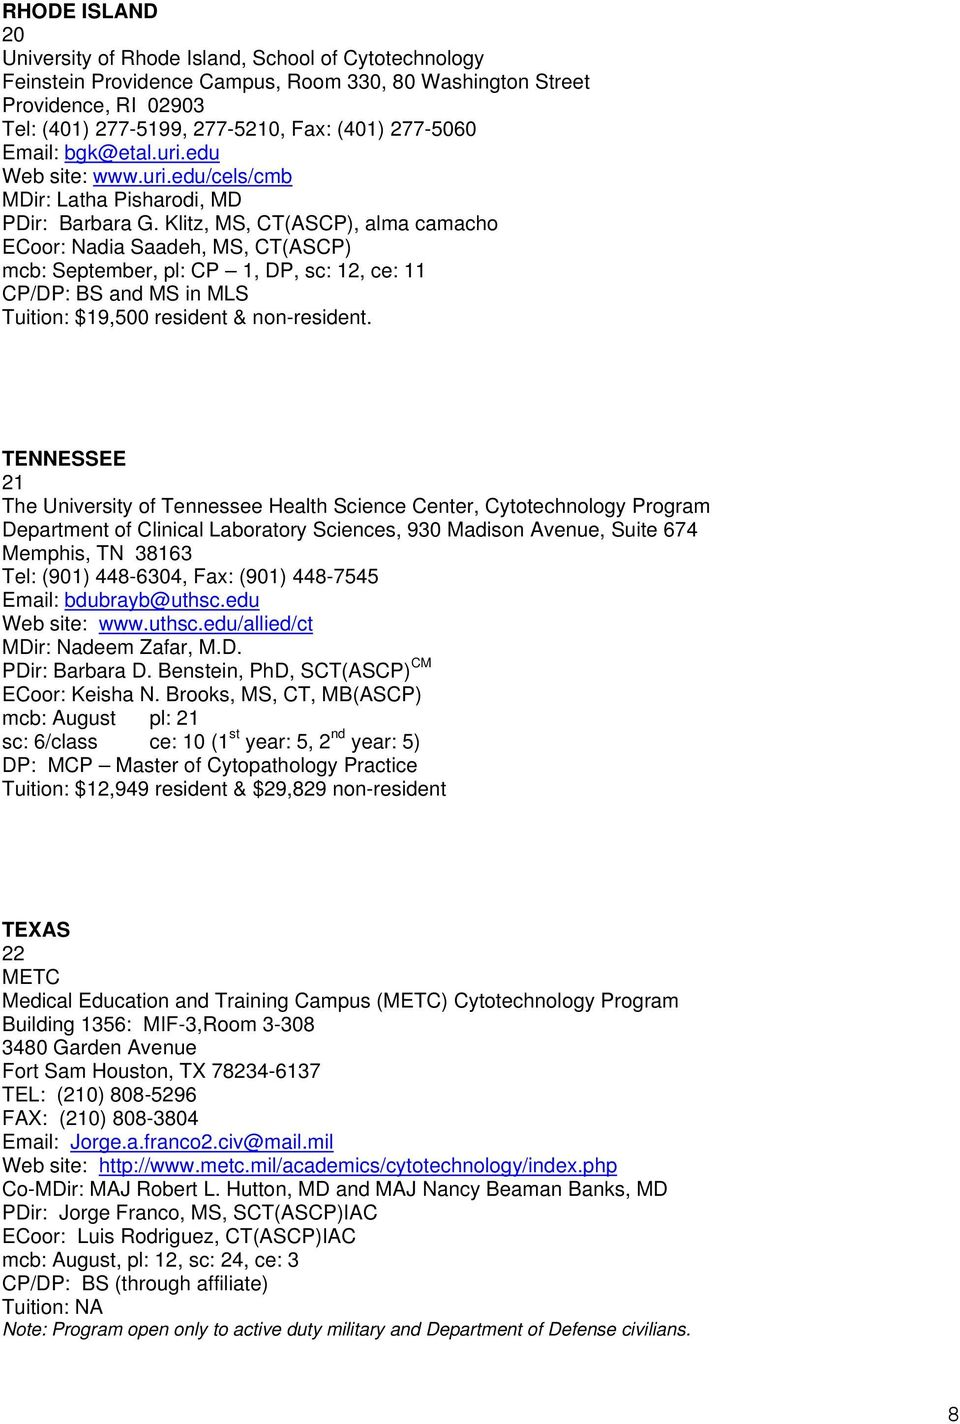 Klitz, MS, CT(AS), alma camacho ECoor: Nadia Saadeh, MS, CT(AS) mcb: September, pl: 1, DP, sc: 12, ce: 11 /DP: BS and MS in MLS Tuition: $19,500 resident & non-resident.